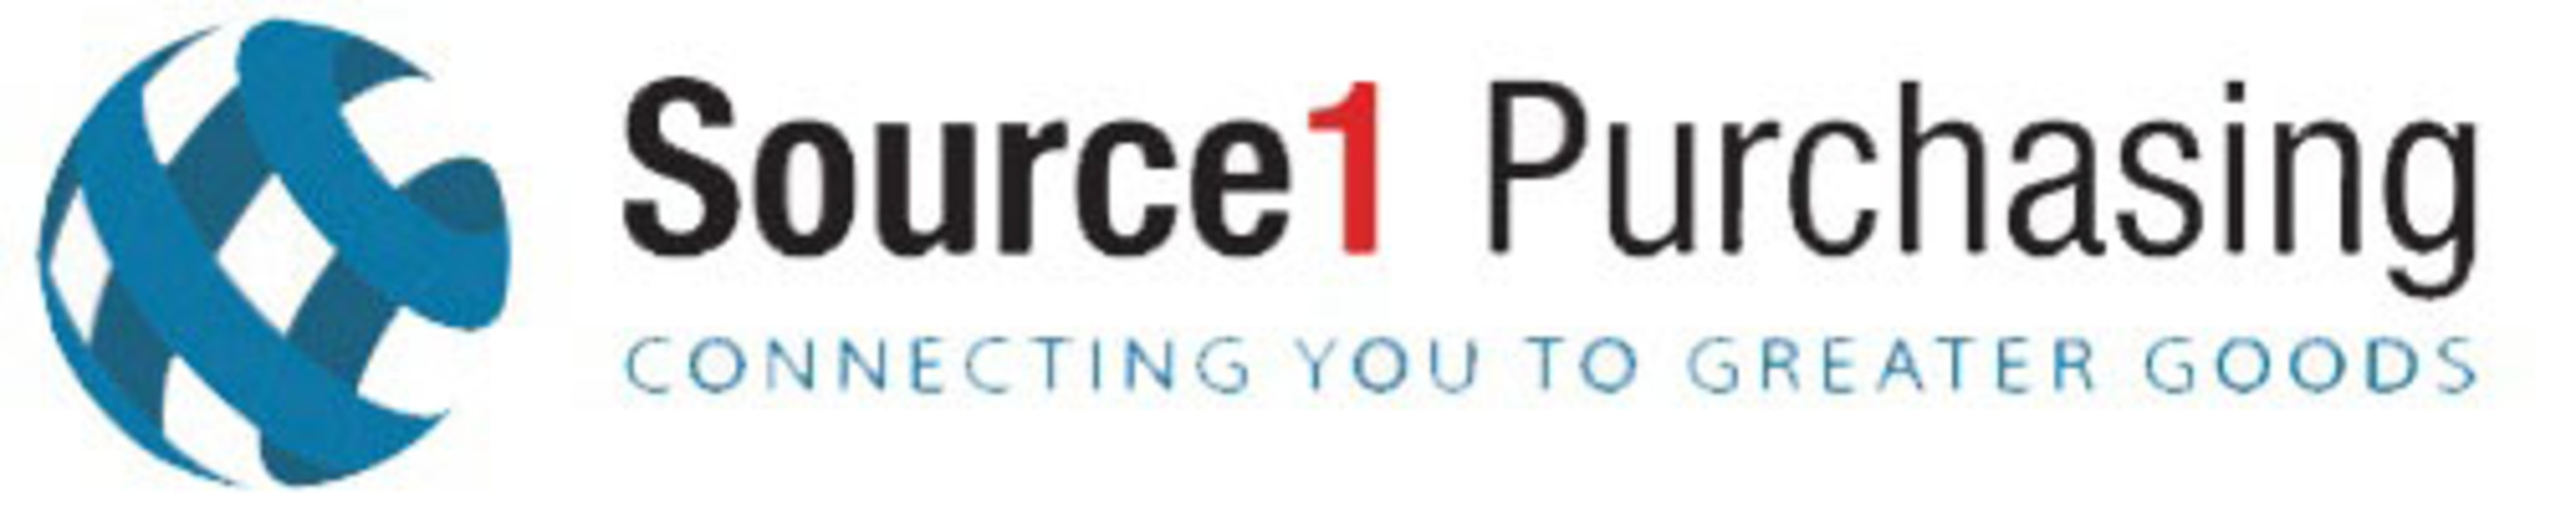 Source1 Purchasing Logo The Leverage of Billions